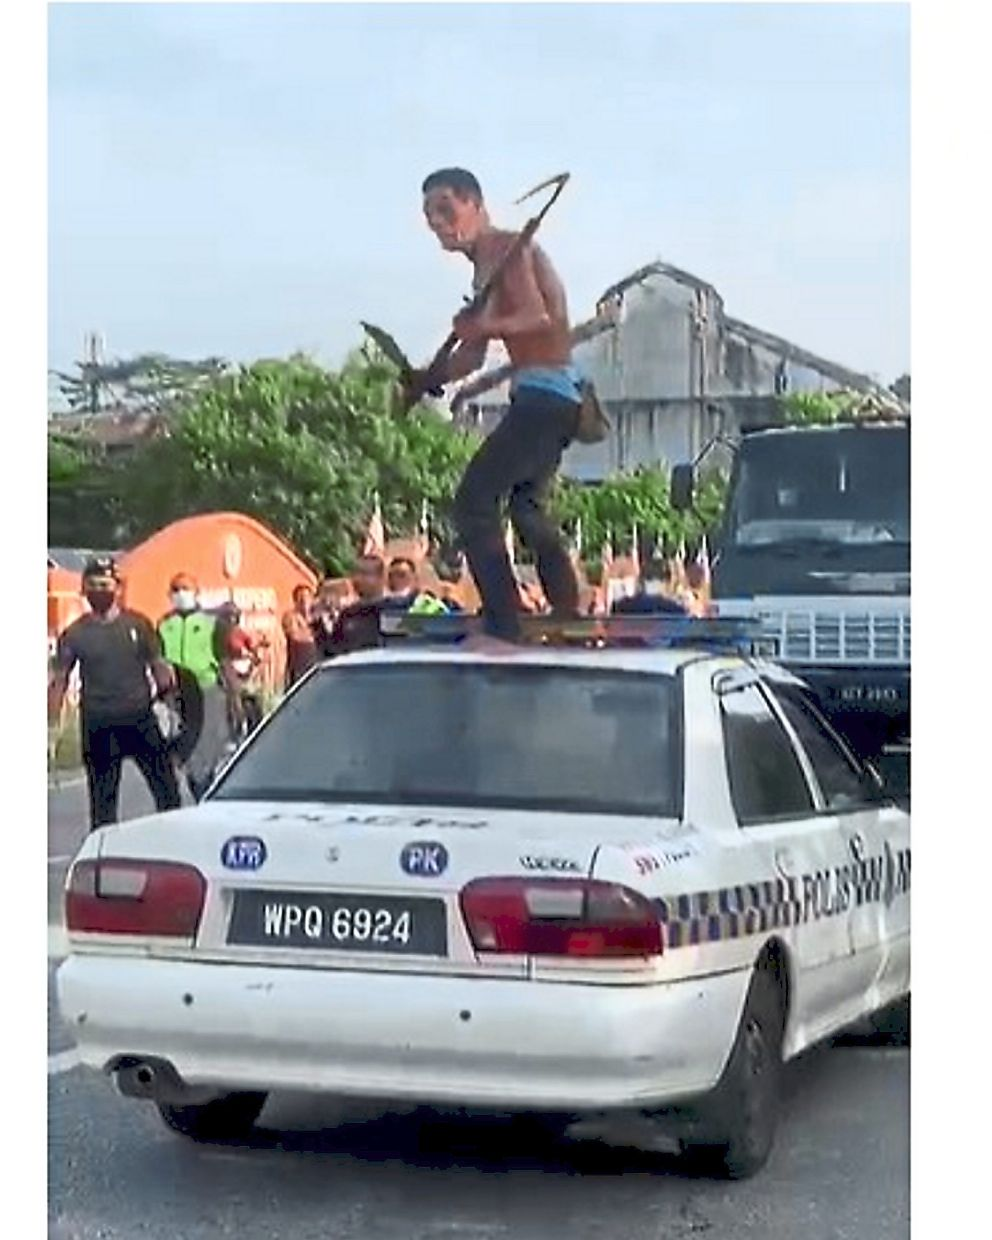 Tense moment: A screencap of a video showing the shirtless man seen standing on top of a police mobile vehicle with the machete and scythe in hand while screaming at policemen who had him surrounded.